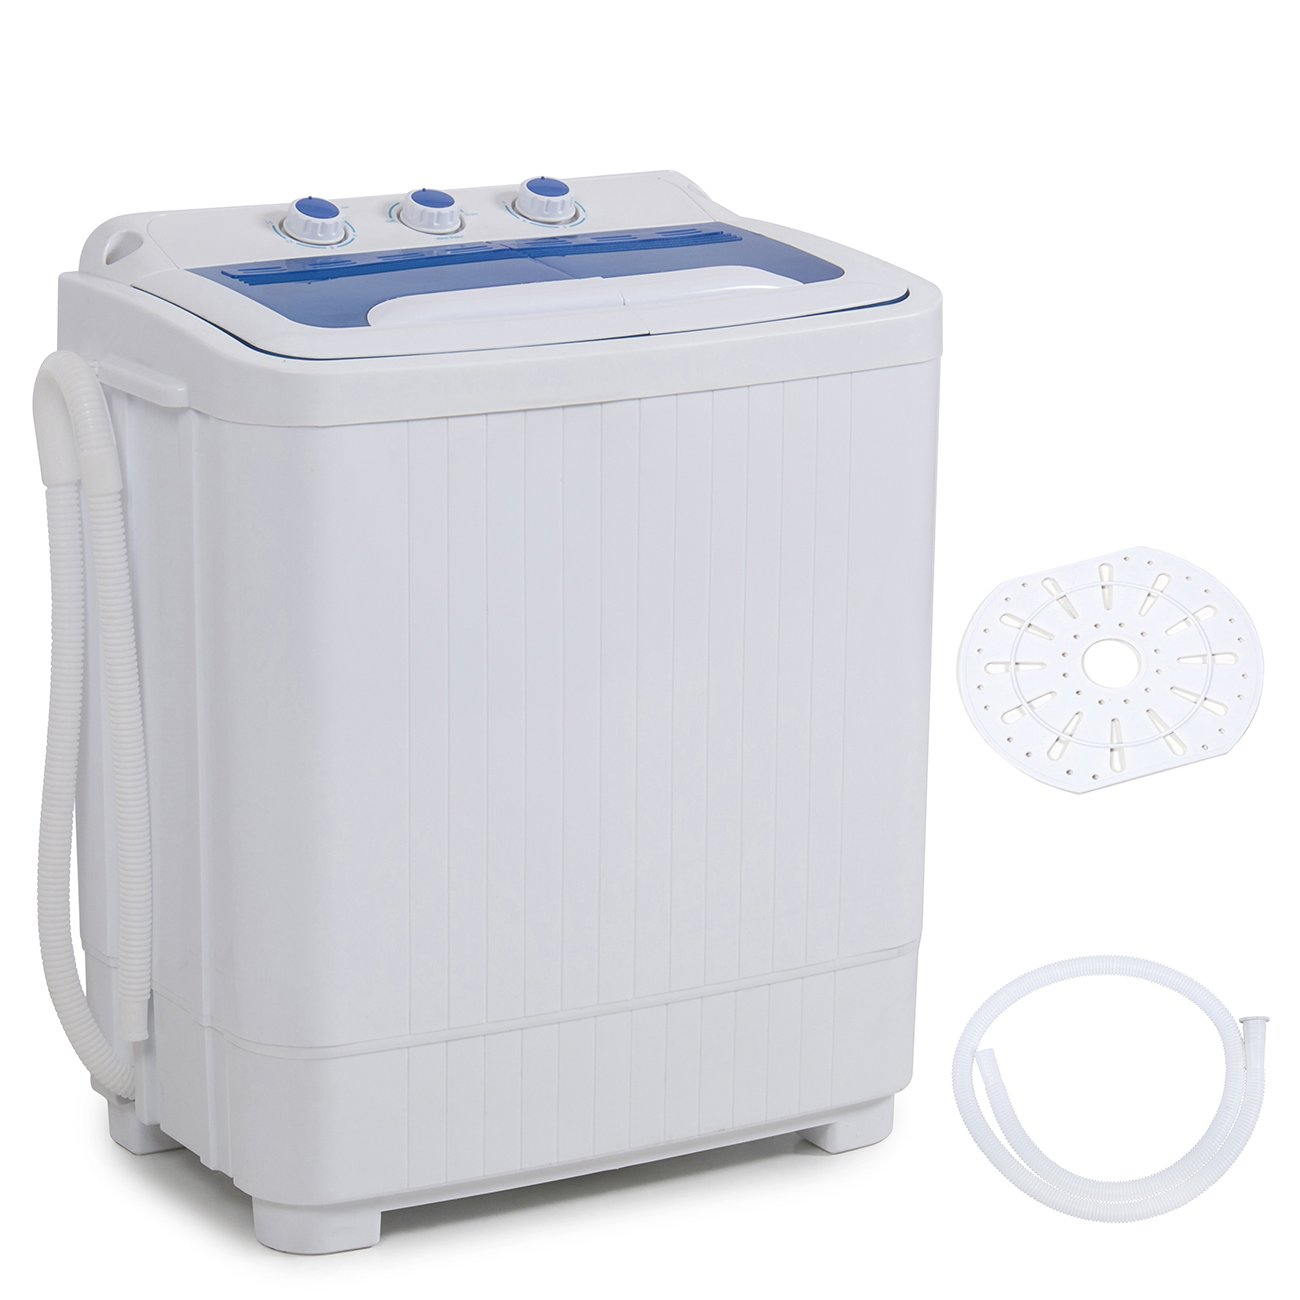 DELLA Mini Electric Washing Machine Home Twin Tub 8.8LBS Portable Compact Washer & Spin Dry Cycle Built-in Pump w/Hose, White 909564-01L